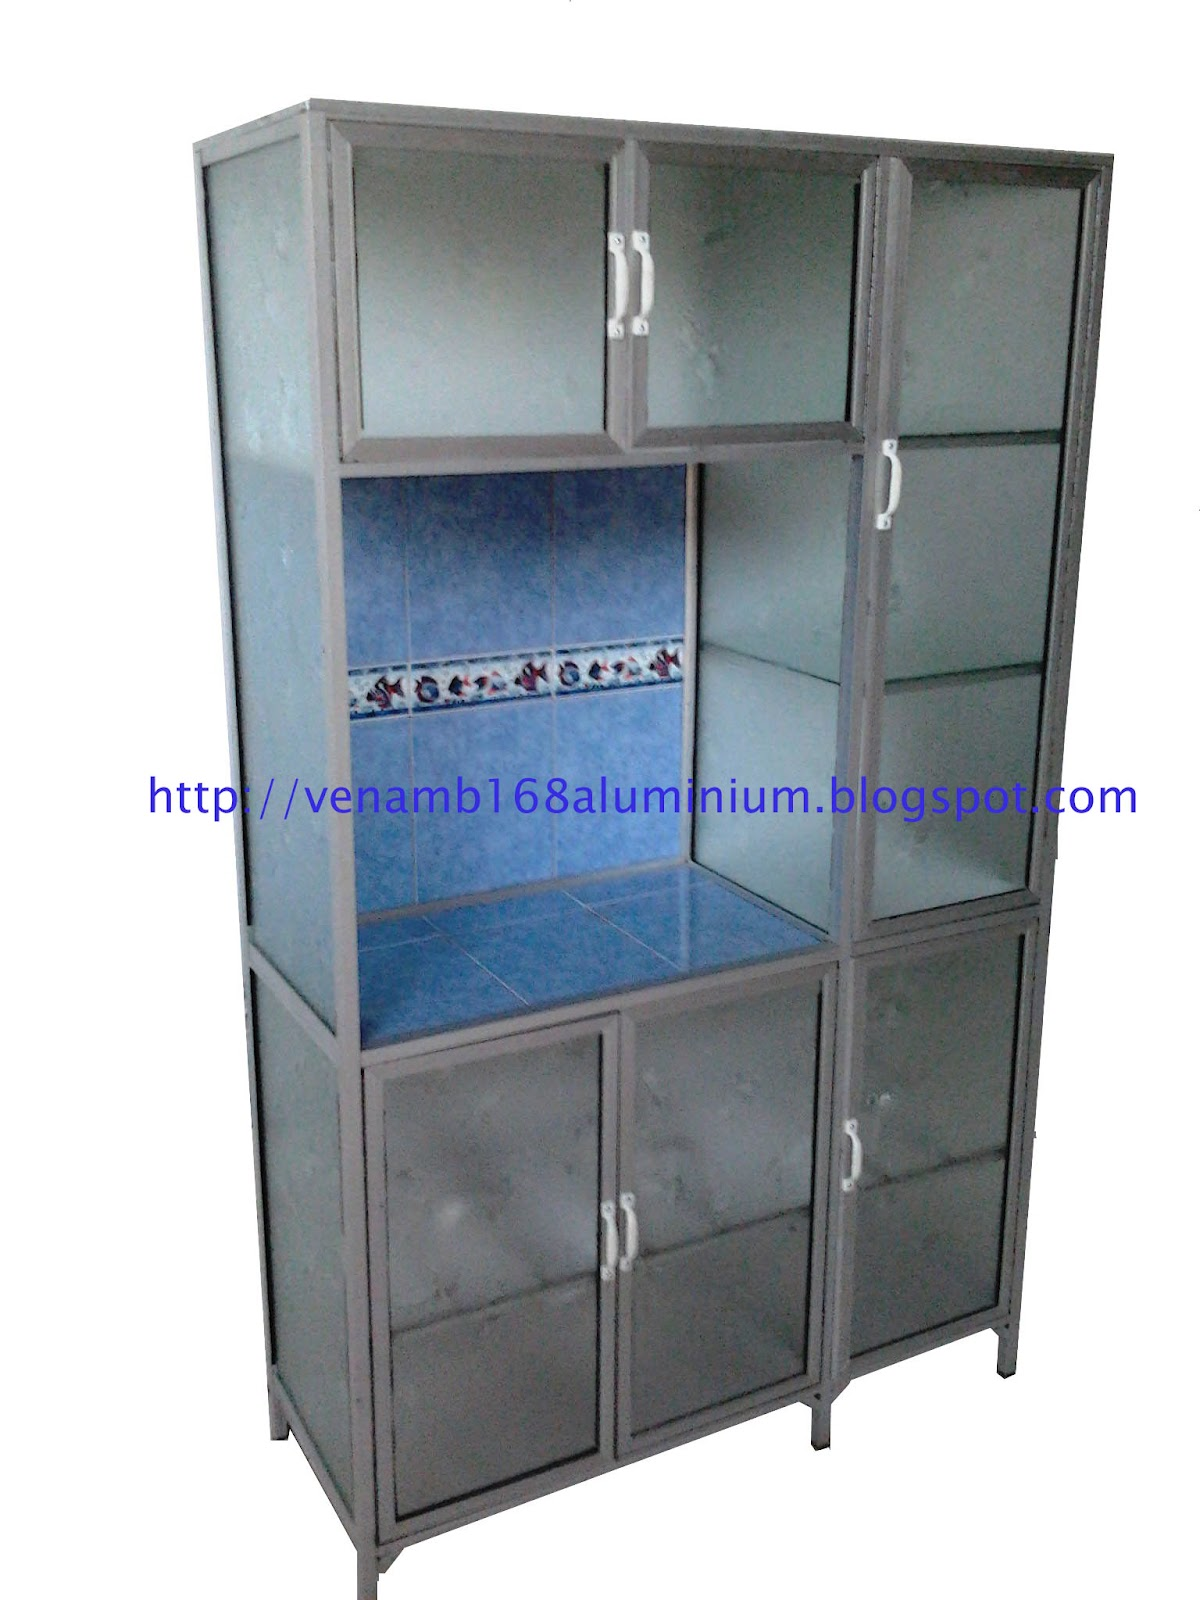 Kitchen Set Aluminium Jogja Kitchen Set Aluminium Semarang 4 Modern Home Revolution